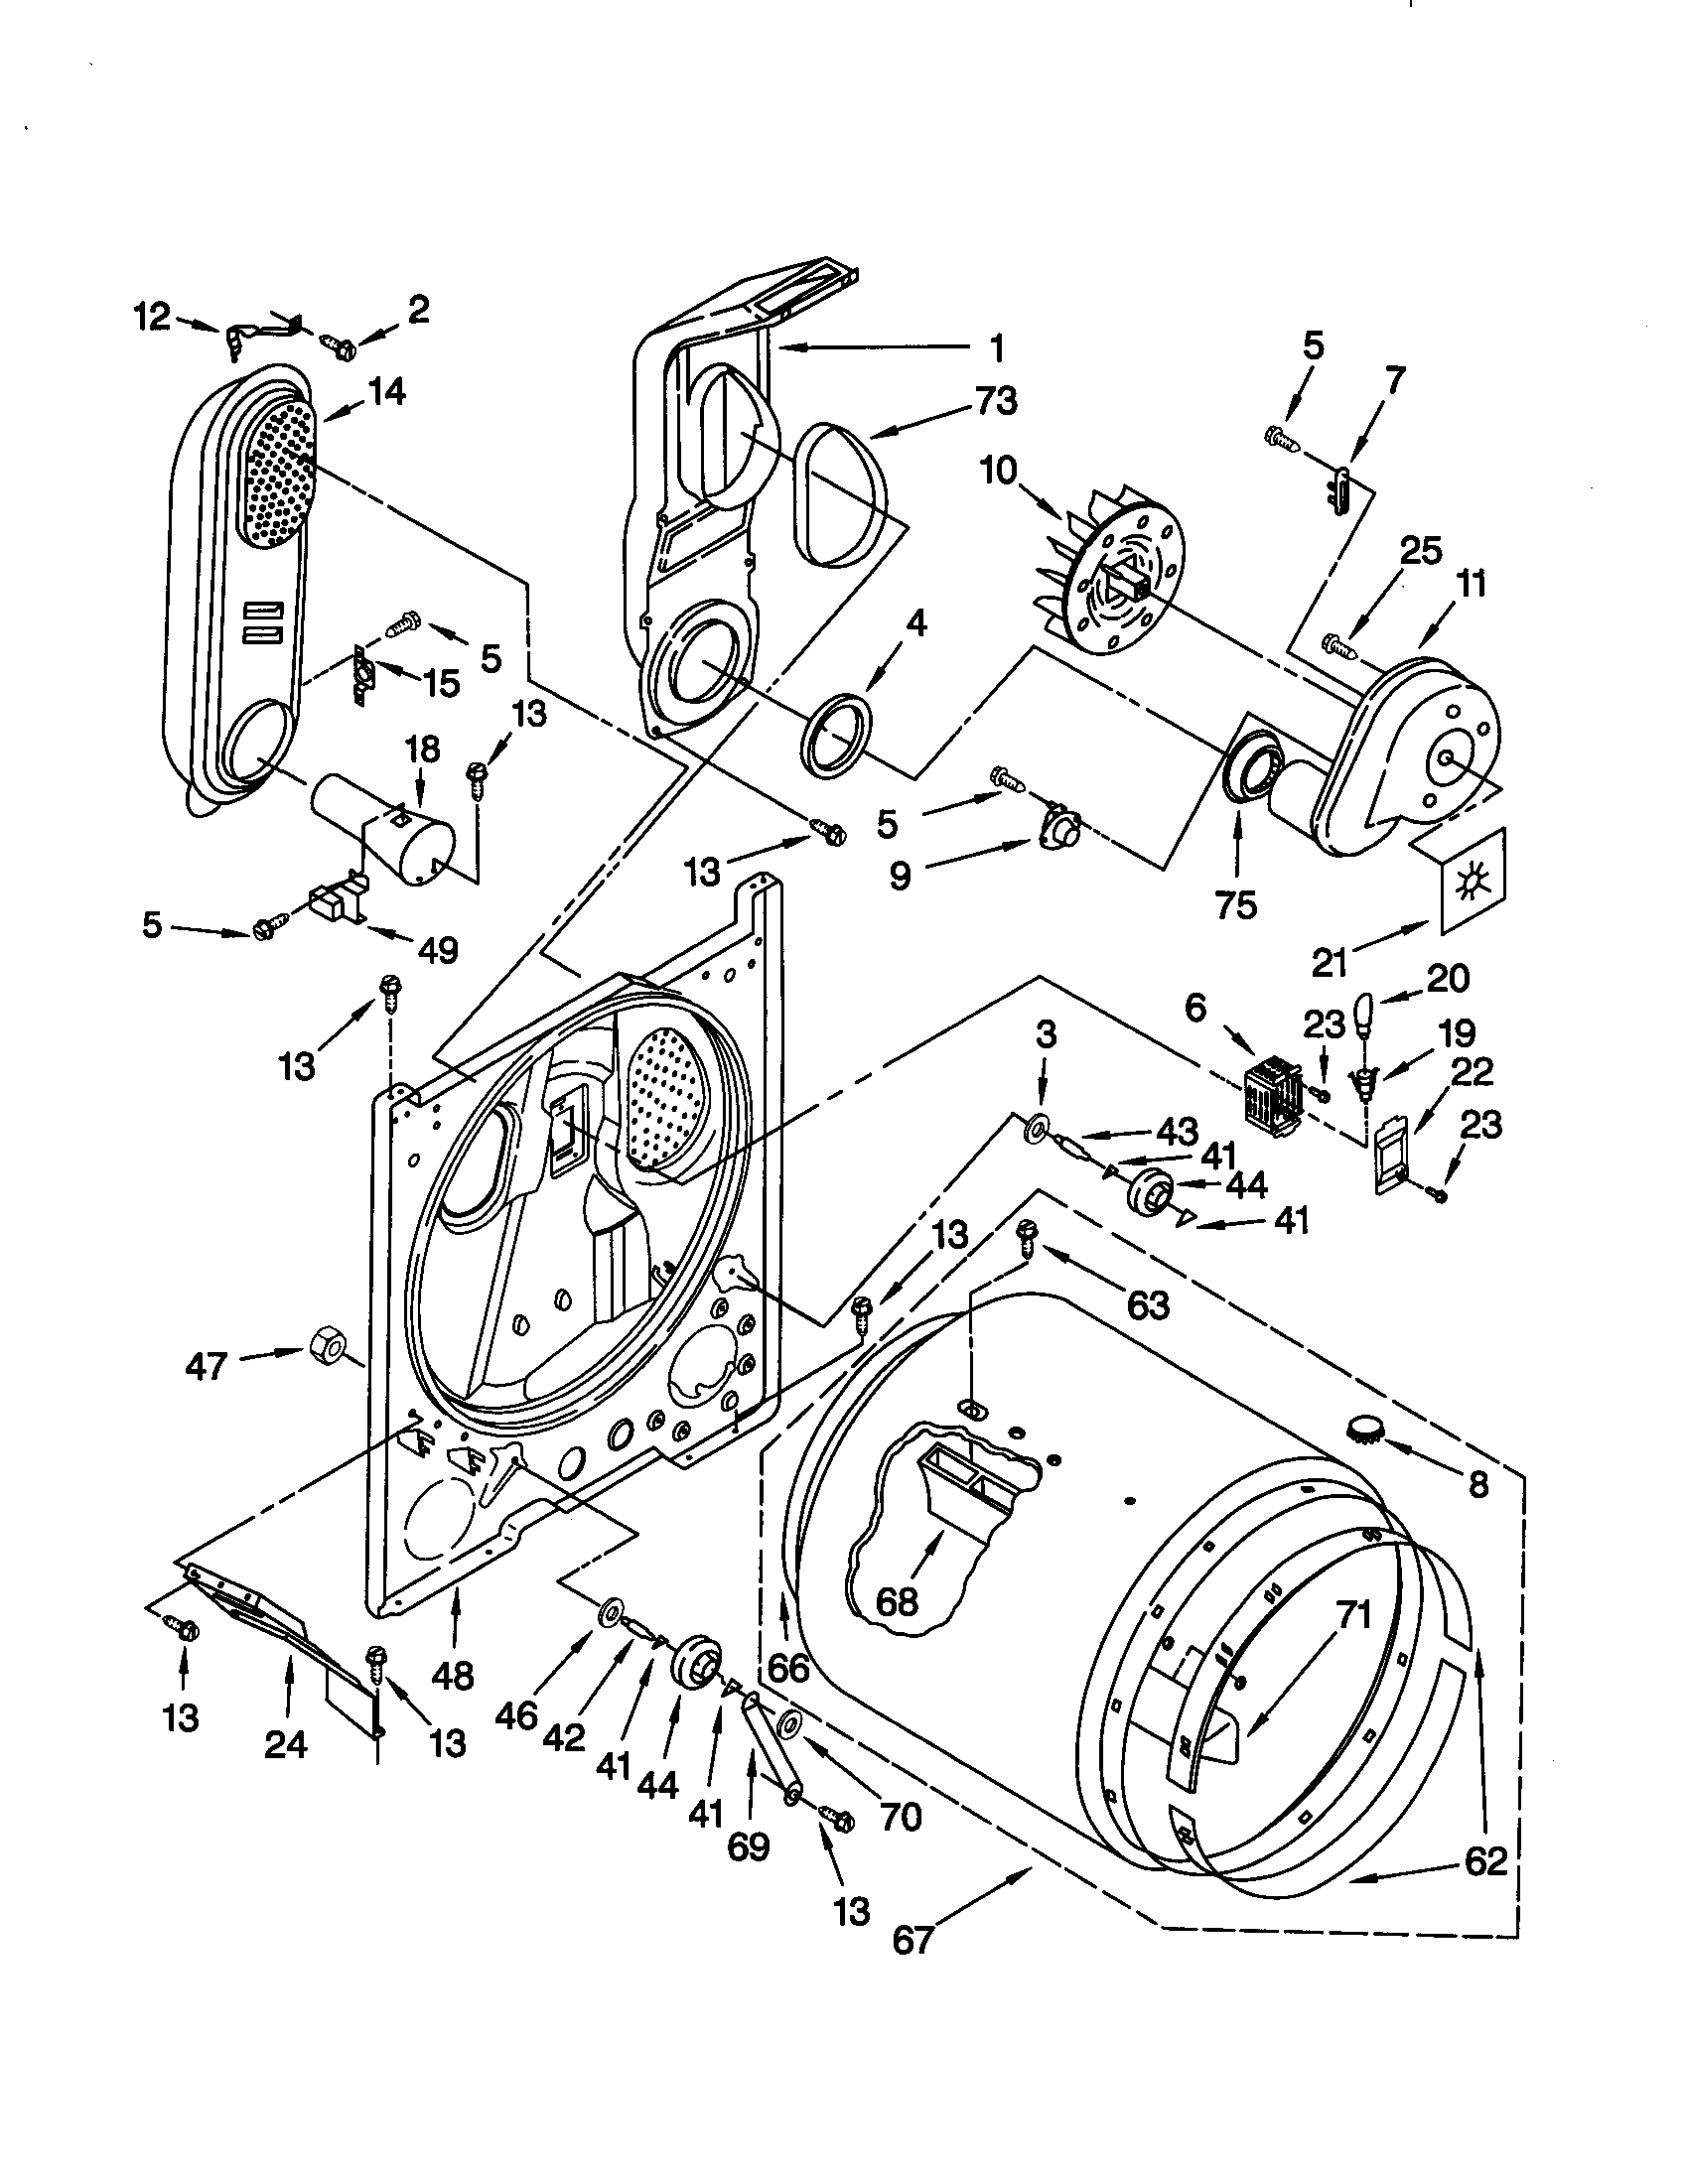 hight resolution of whirlpool dryer wiring diagram diagram stream whirlpool gas dryer wiring diagram whirlpool gas dryer parts model